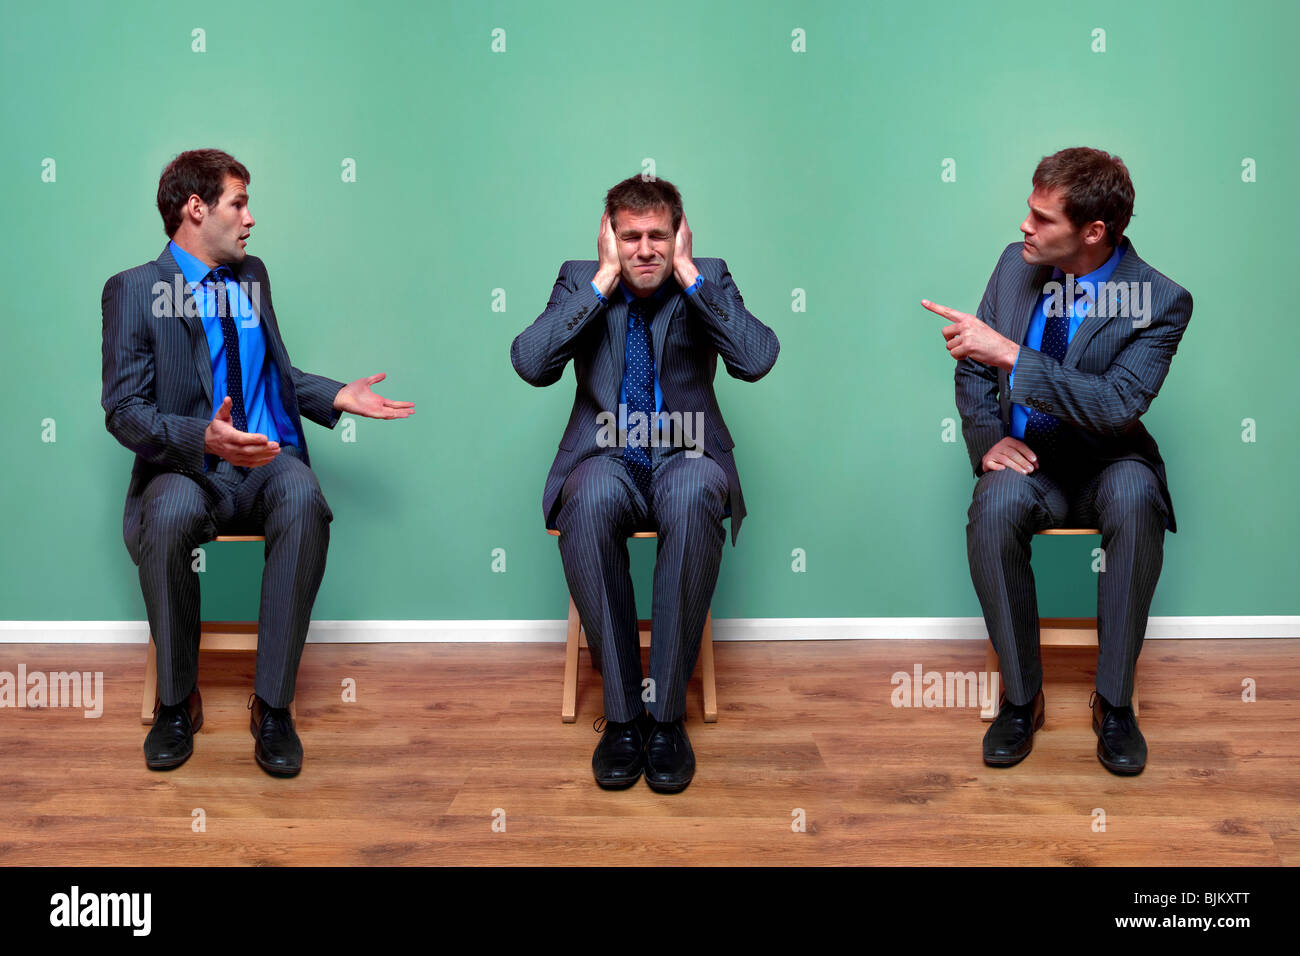 Concept image of a businessman having an argument with himself - Stock Image